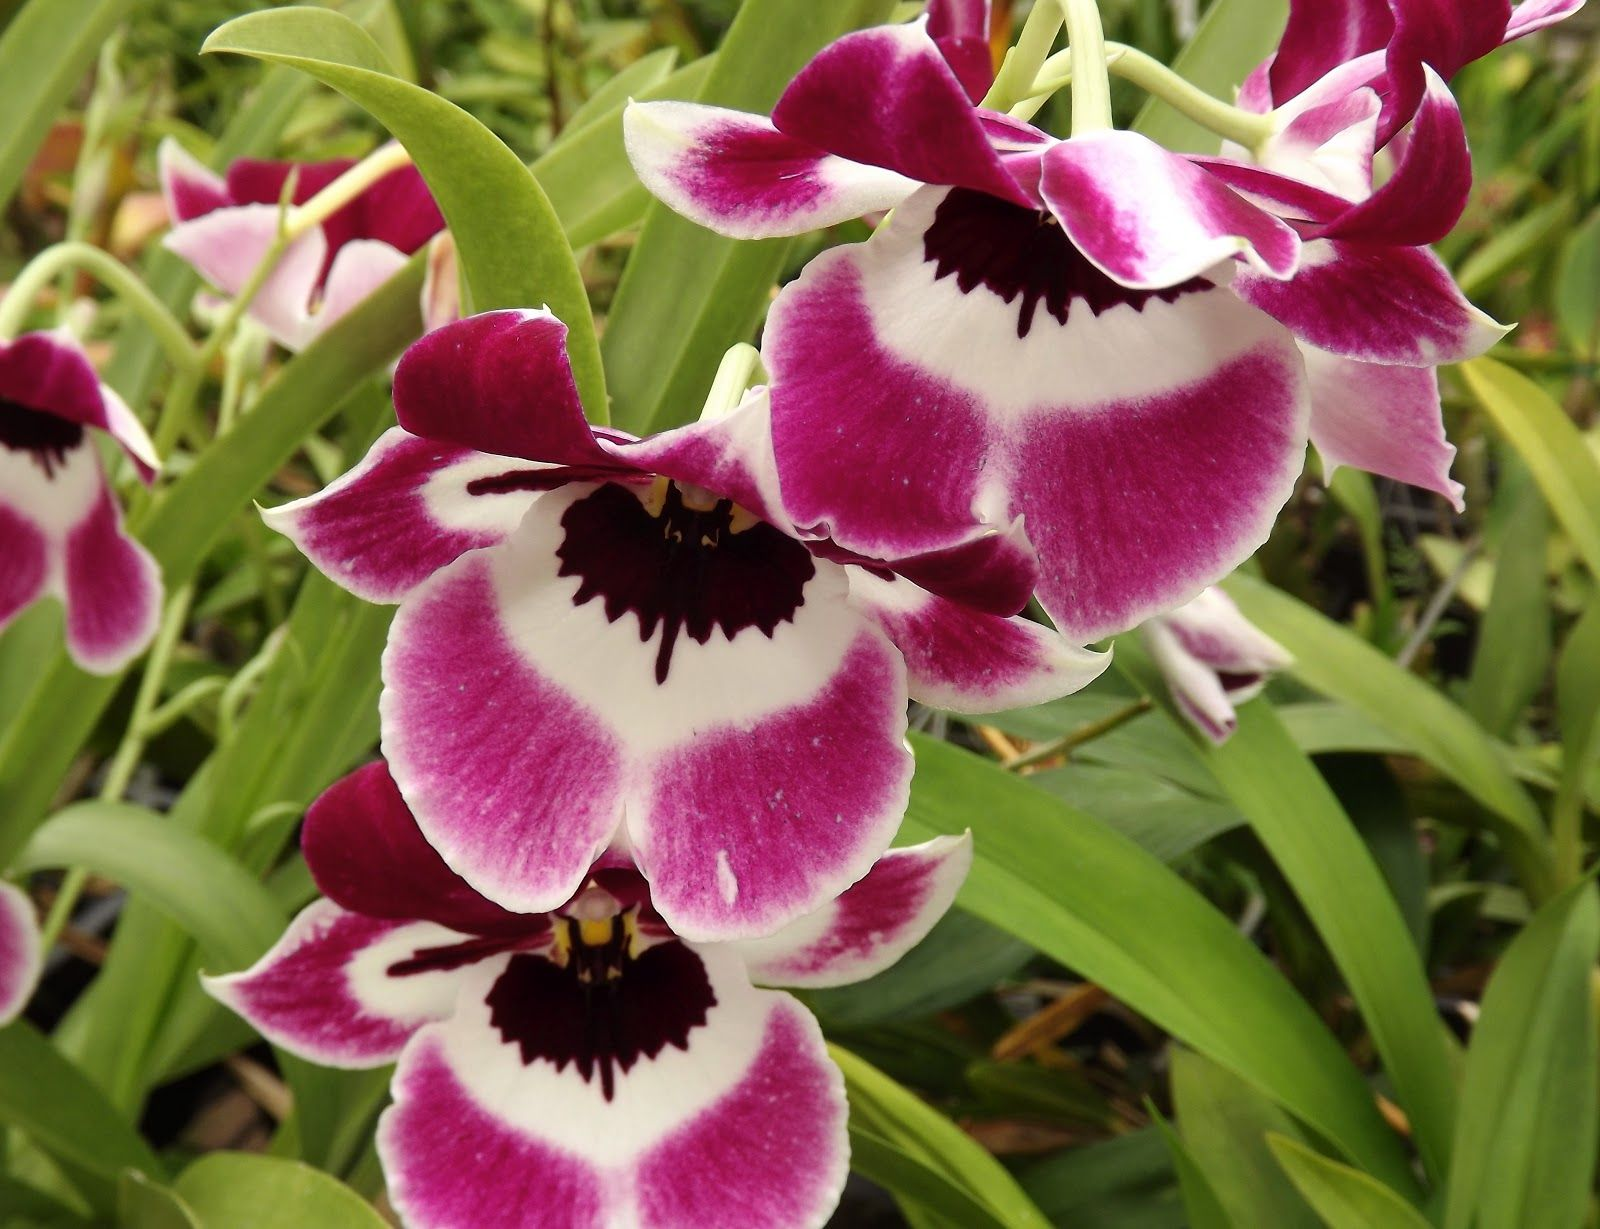 Mps Pink Mooma Yosemite Sam Common Name Is Pansy Orchid And